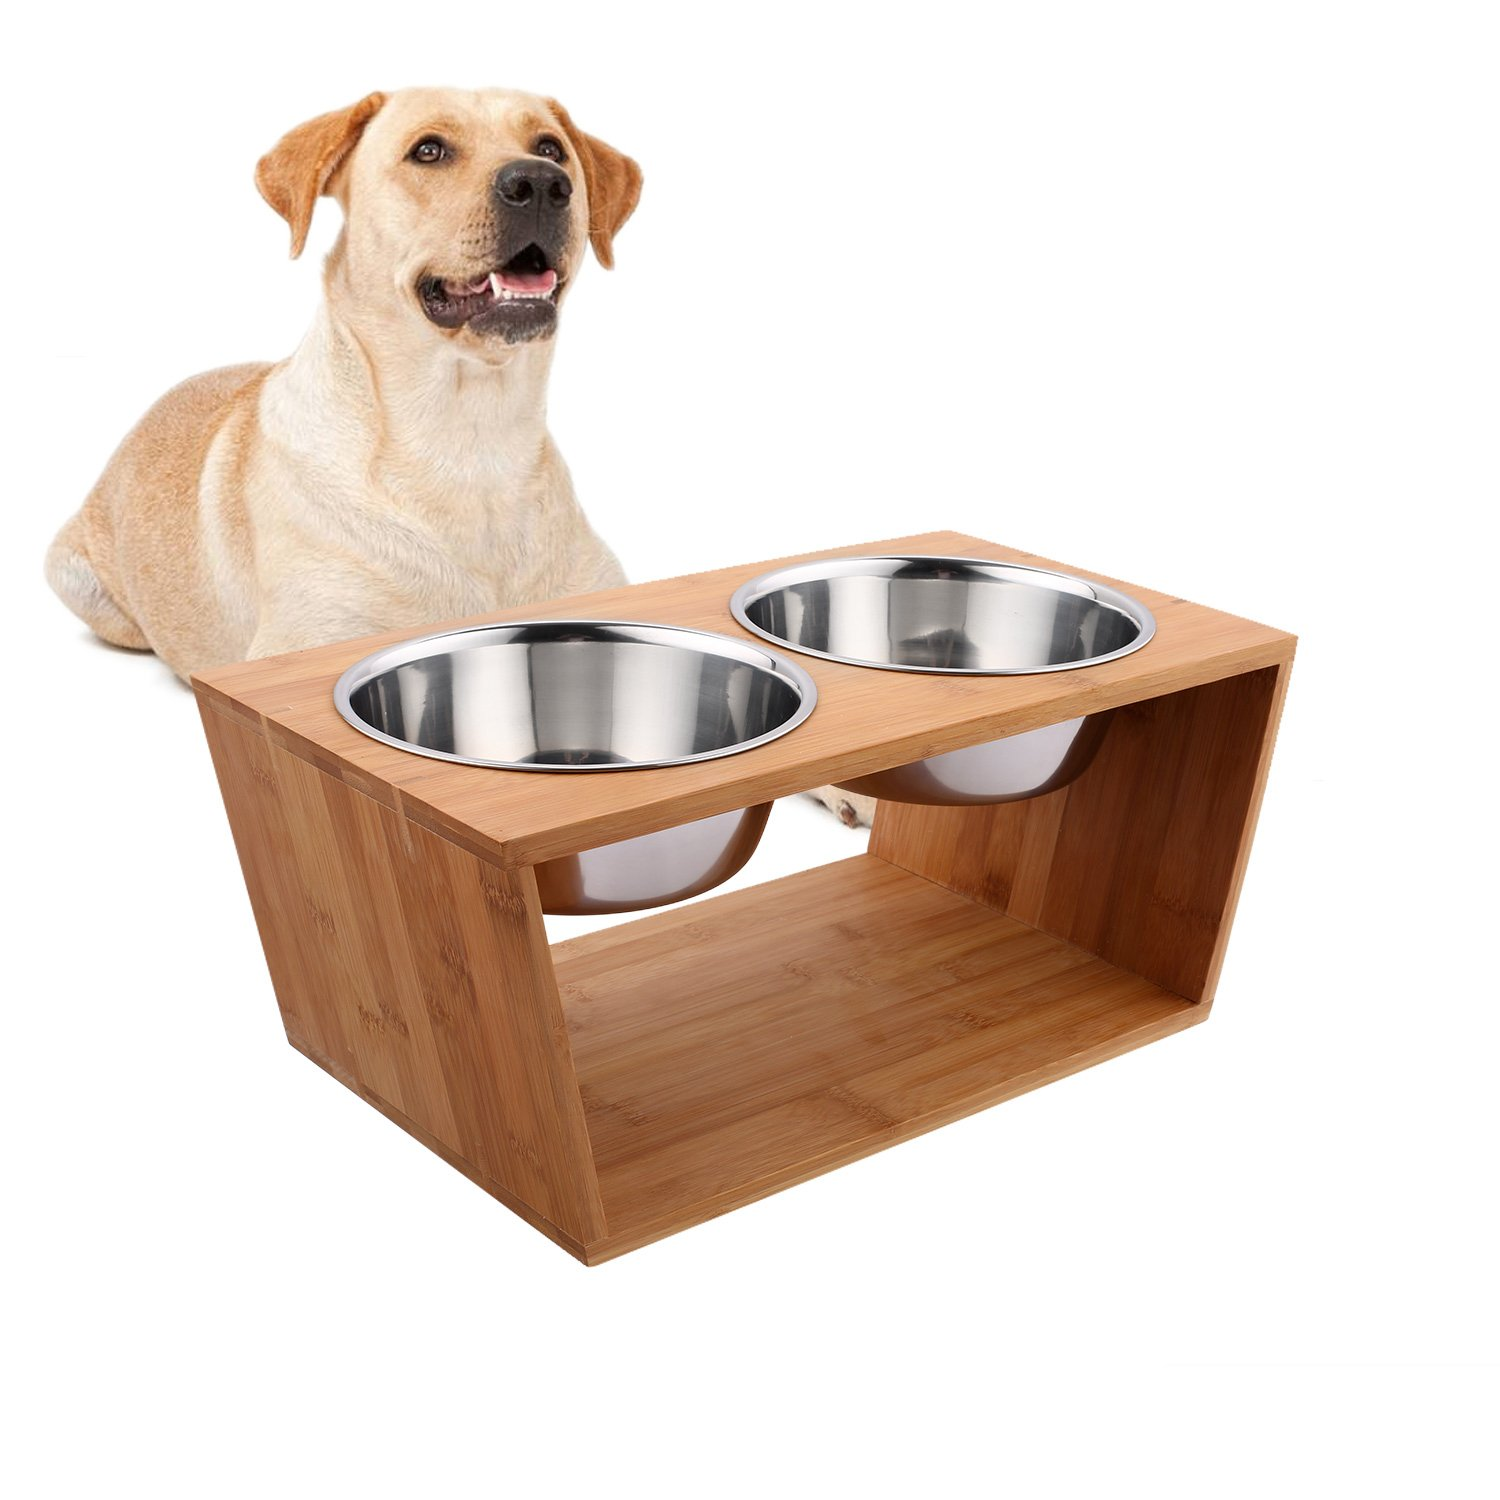 Anfan Raised Pet Bowls for Cats and Dogs Bamboo Elevated Pet Feeder Stand with 2 Stainless Steel Bowls for Food and Water (Large)